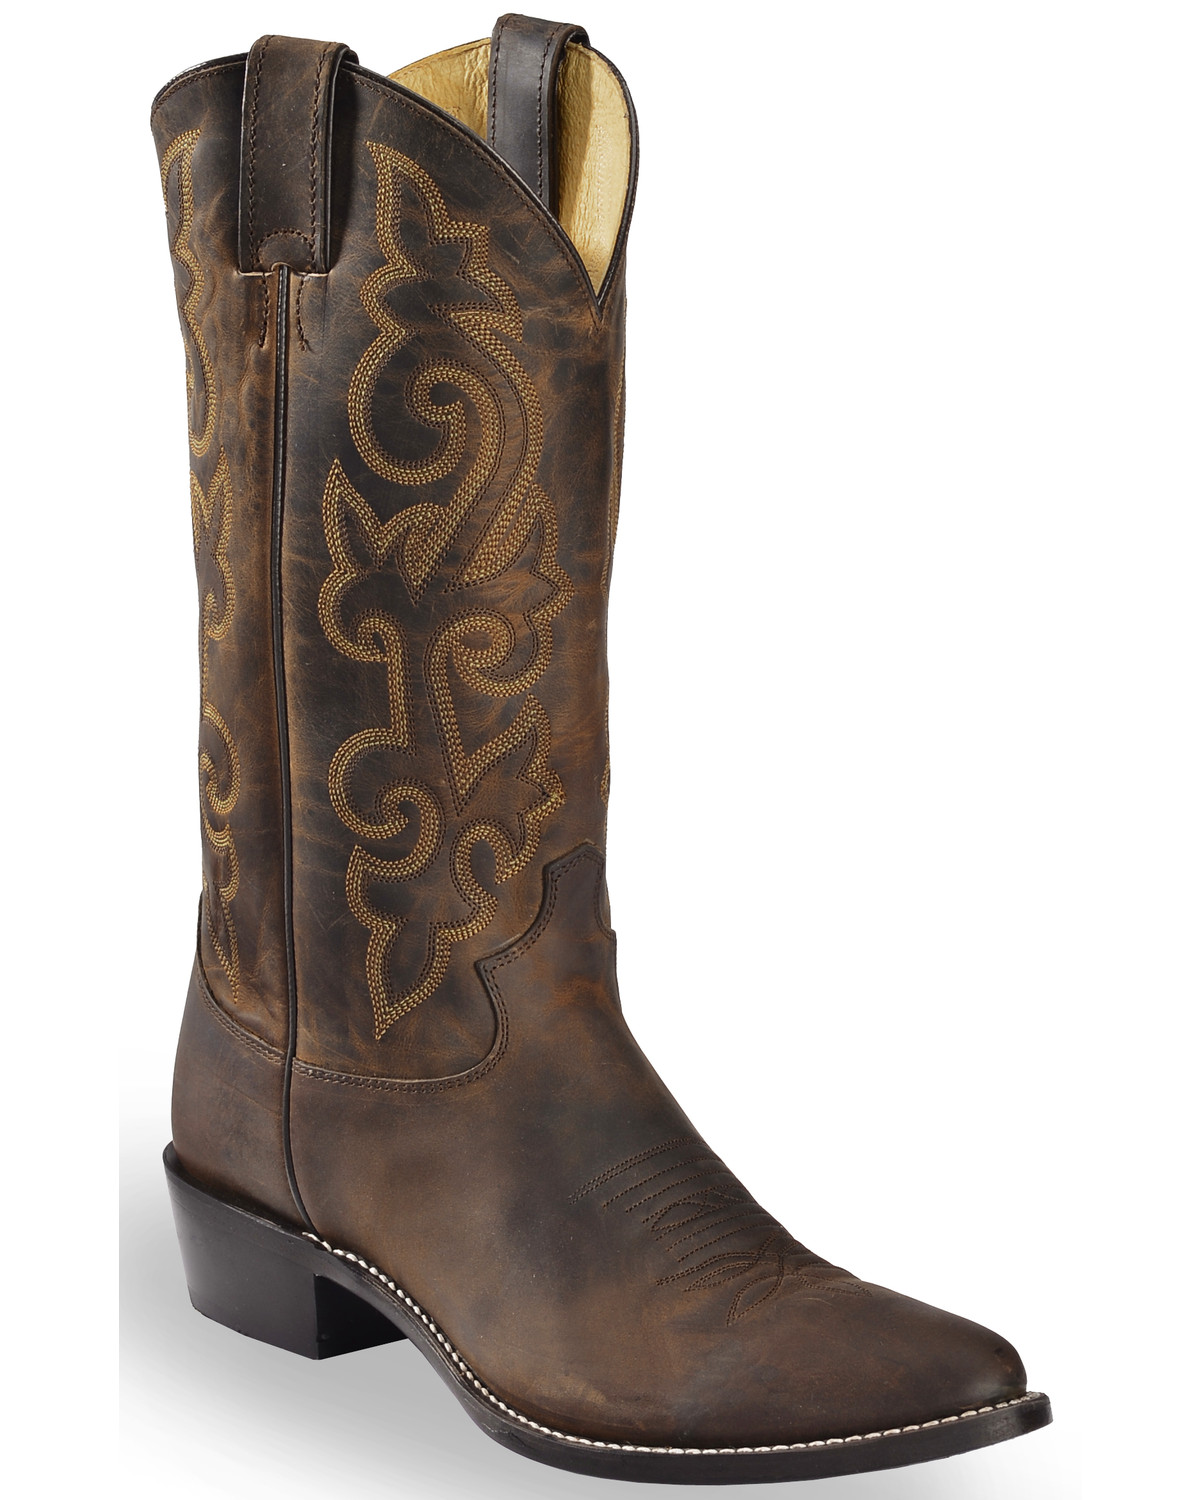 Justin Bay Apache Leather Cowboy Boots - Medium Toe - Country ...